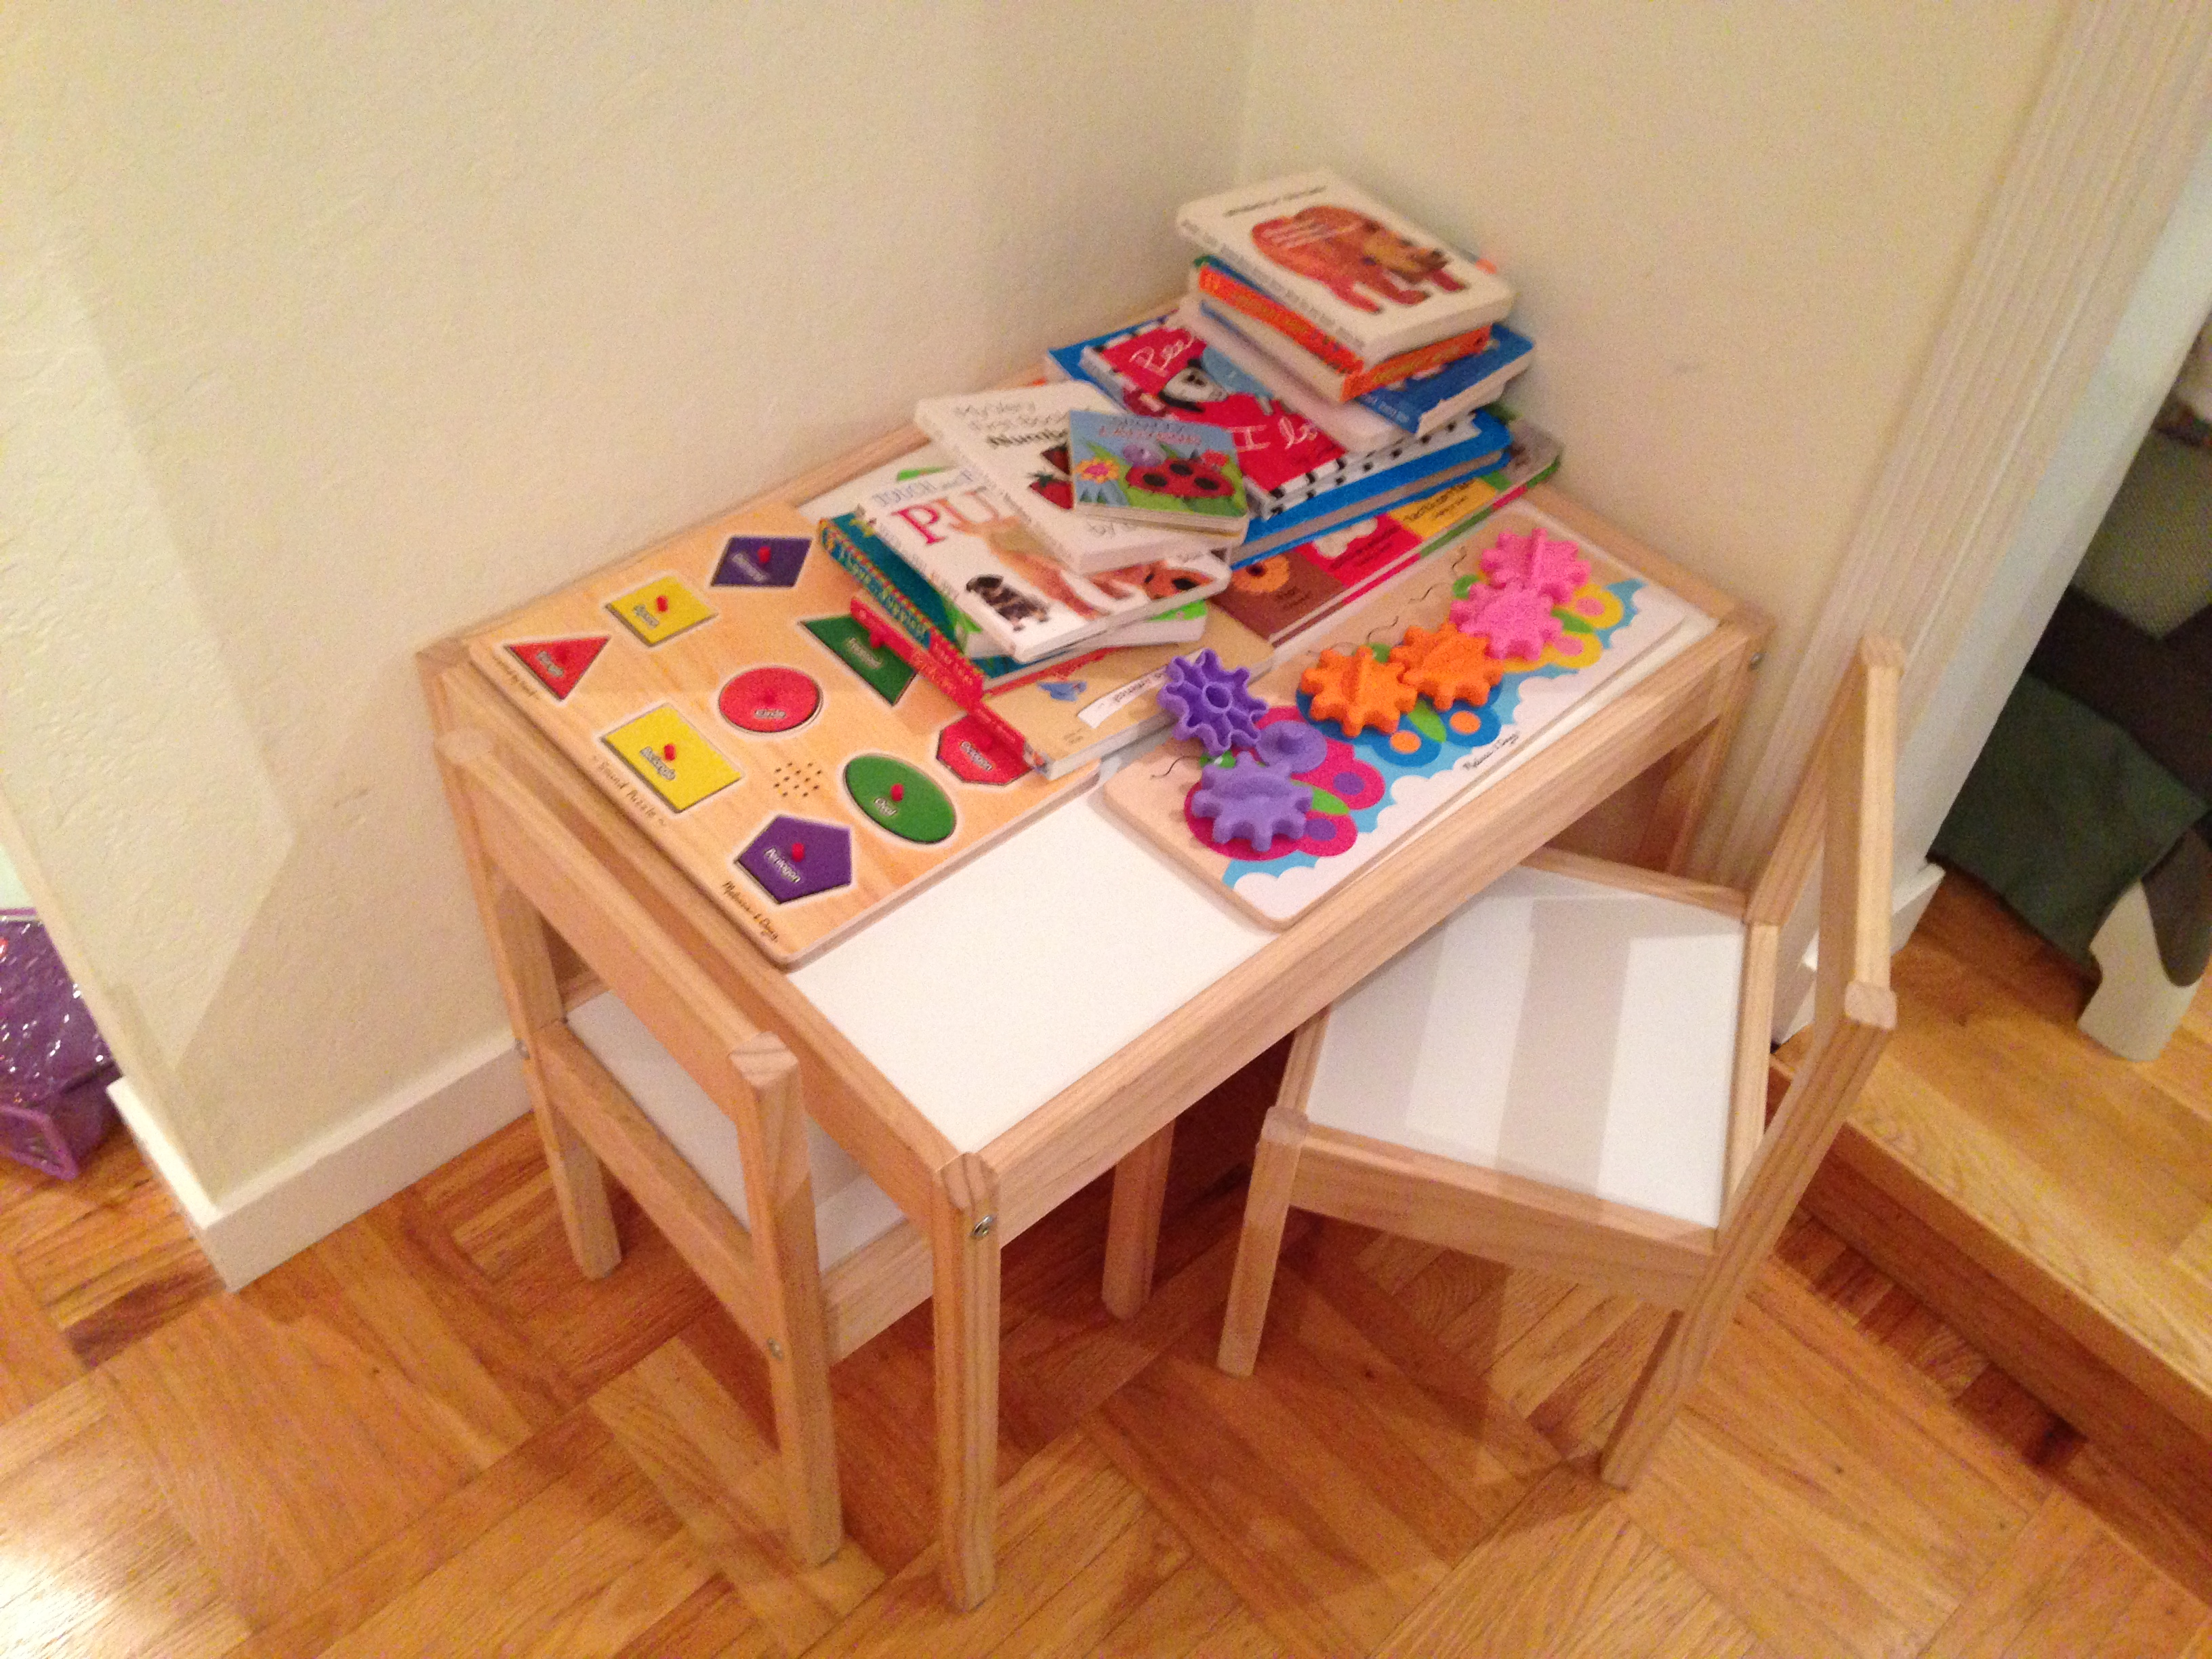 Todayu0027s Hint The Best Little Table for Toddlers & Todayu0027s Hint: The Best Little Table for Toddlers u2013 Hint Mama